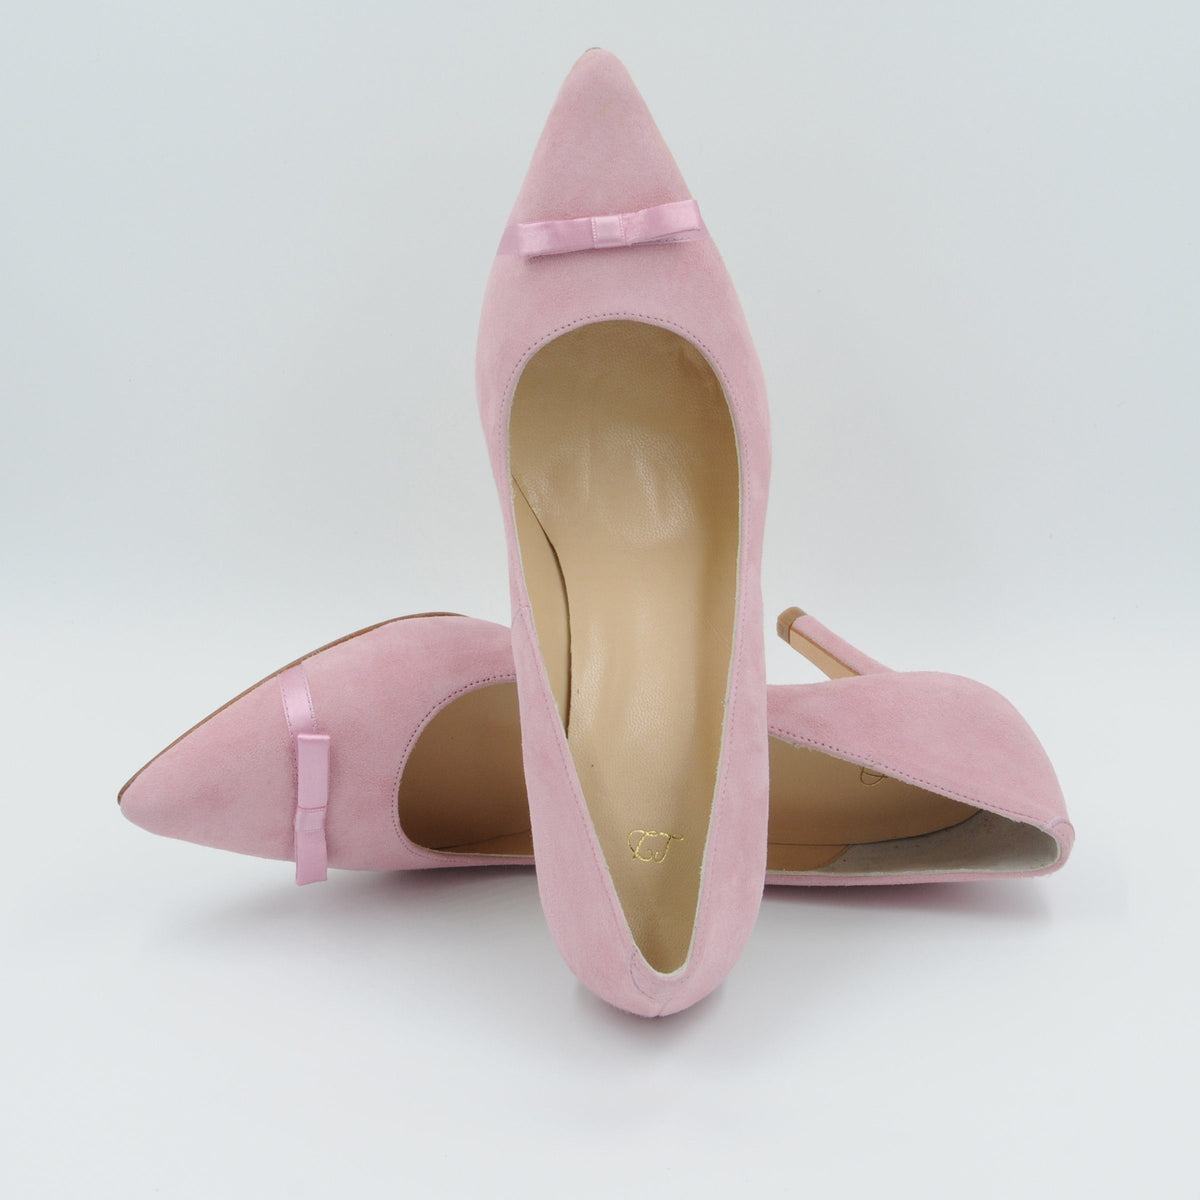 Lola Domecq Priscila In Pink Hand made bow suede stilettos